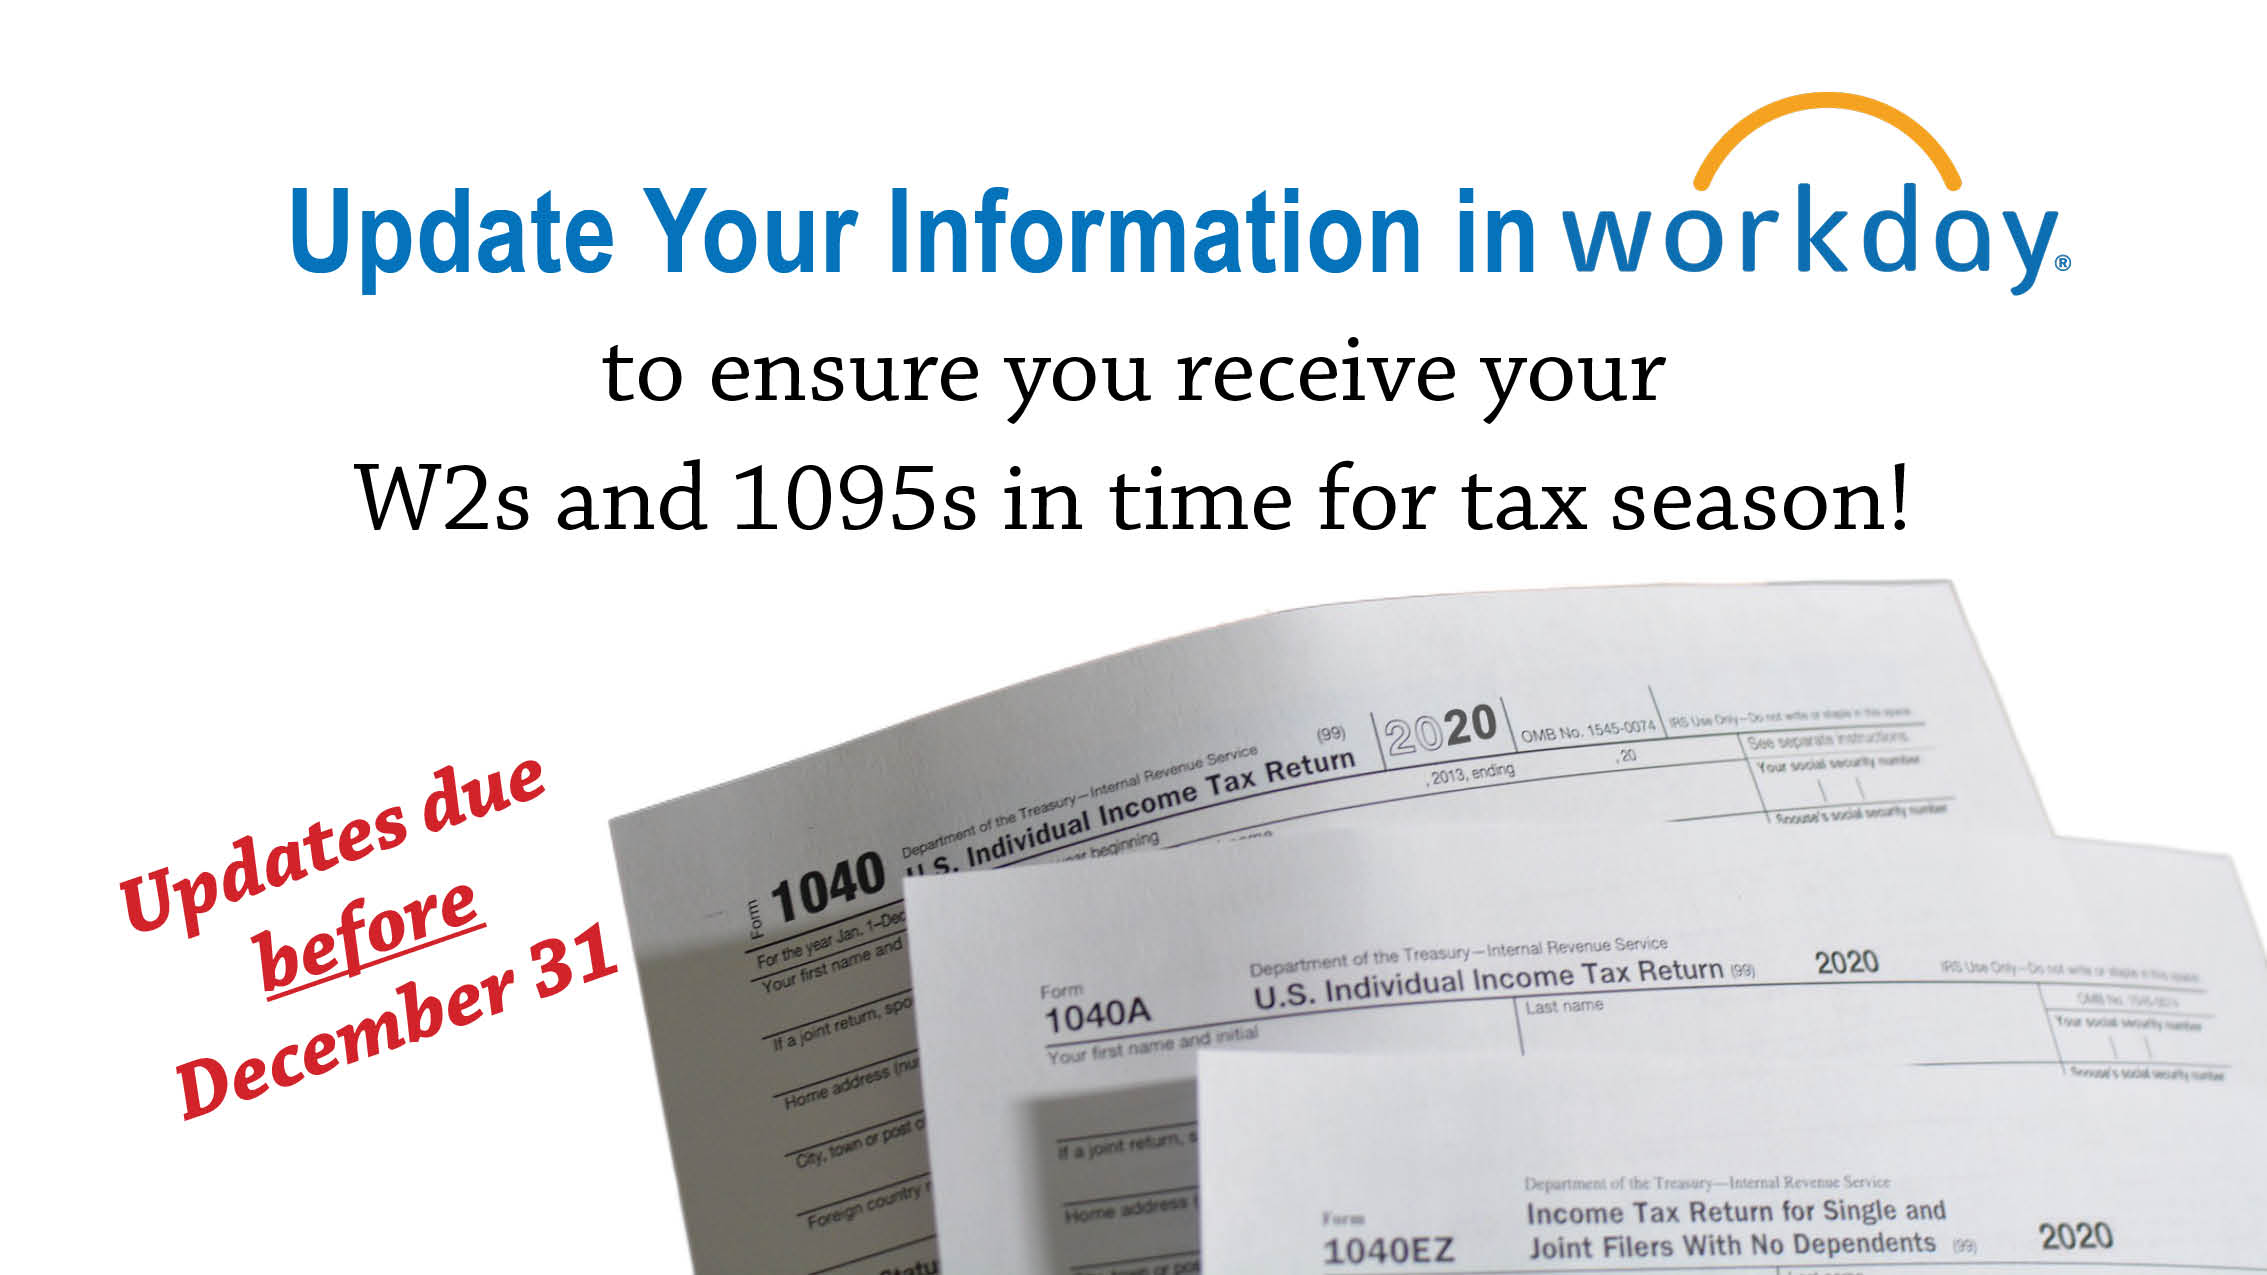 Update your Information in Workday